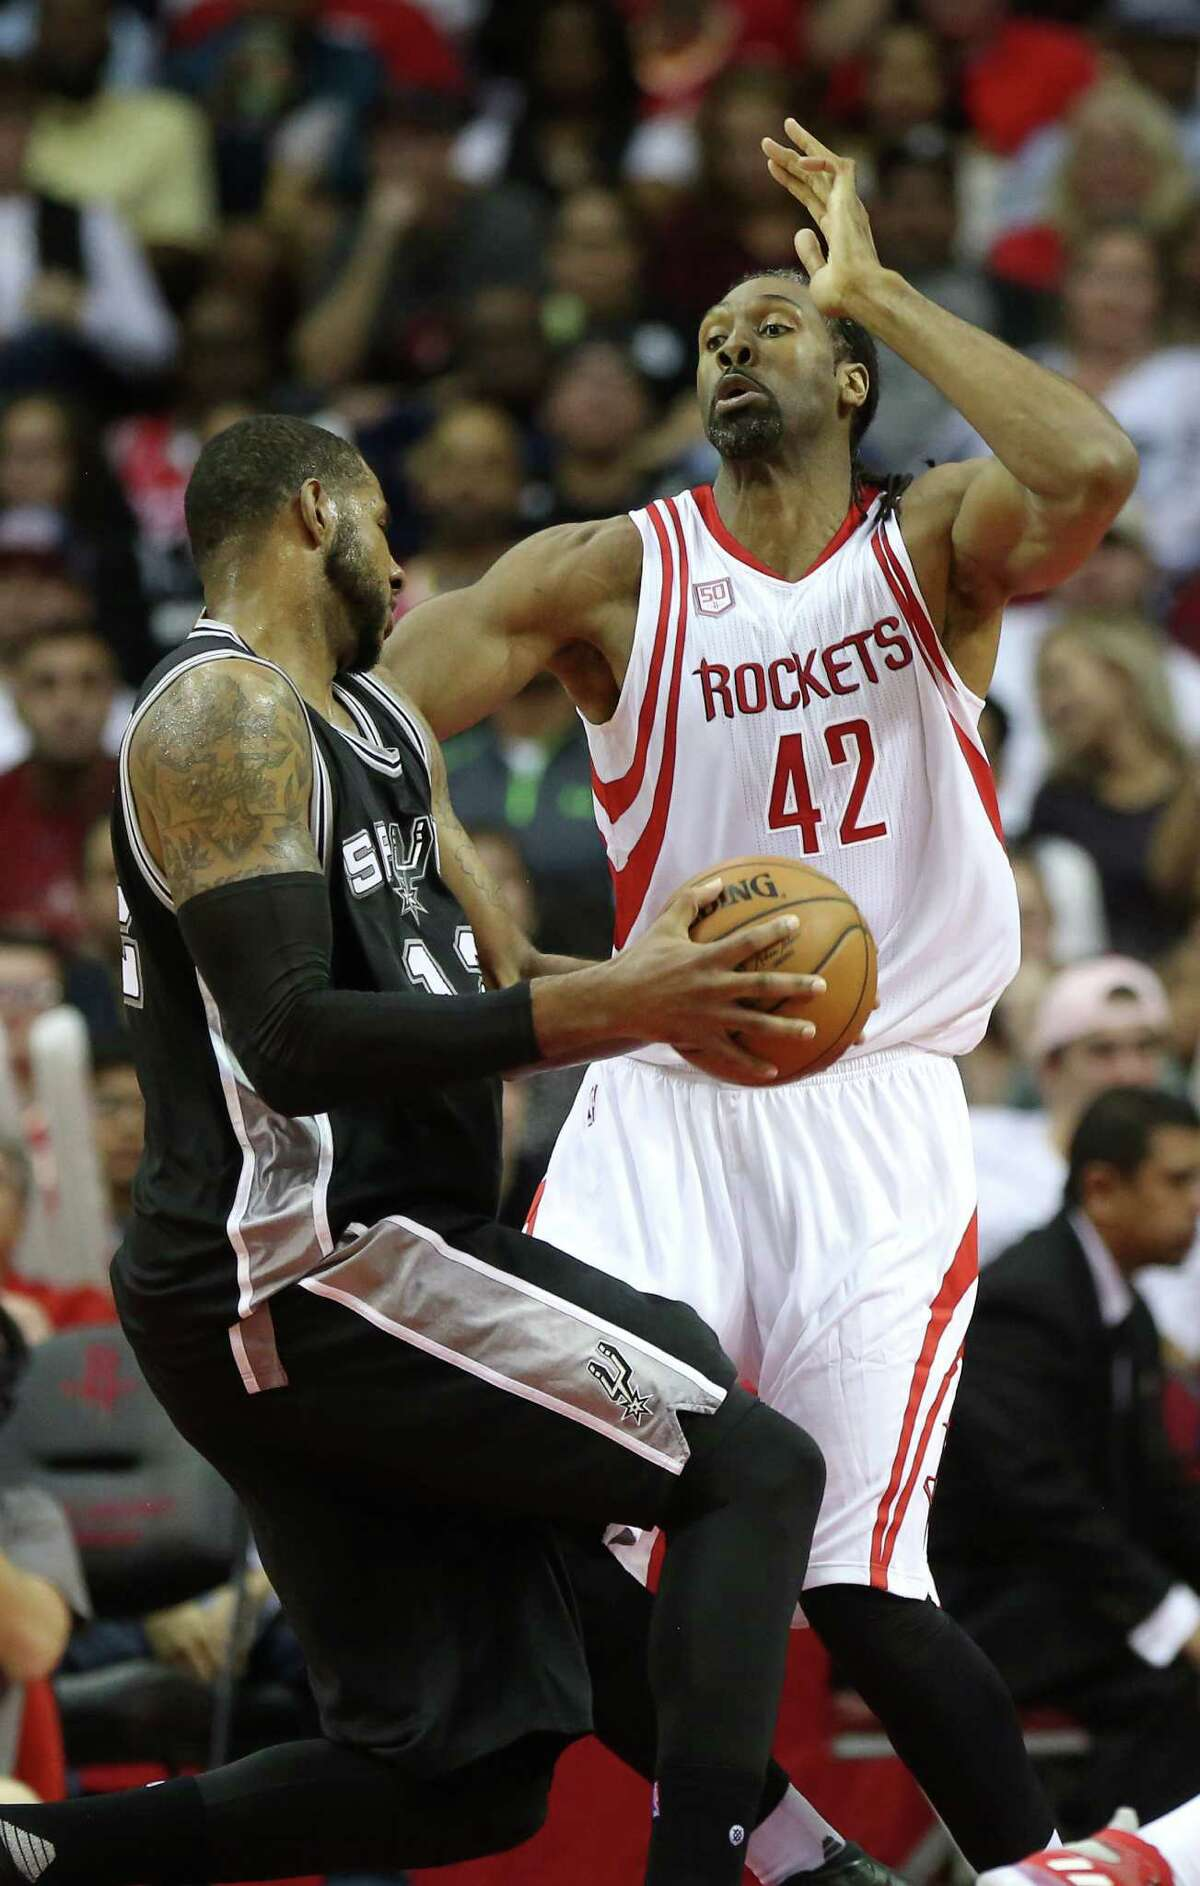 Houston Rockets center Nene Hilario (42) guarding San Antonio Spurs forward LaMarcus Aldridge (12) during the second half of the game Saturday, Nov. 12, 2016, in Houston. The Rockets lost to the Spurs 106-100.